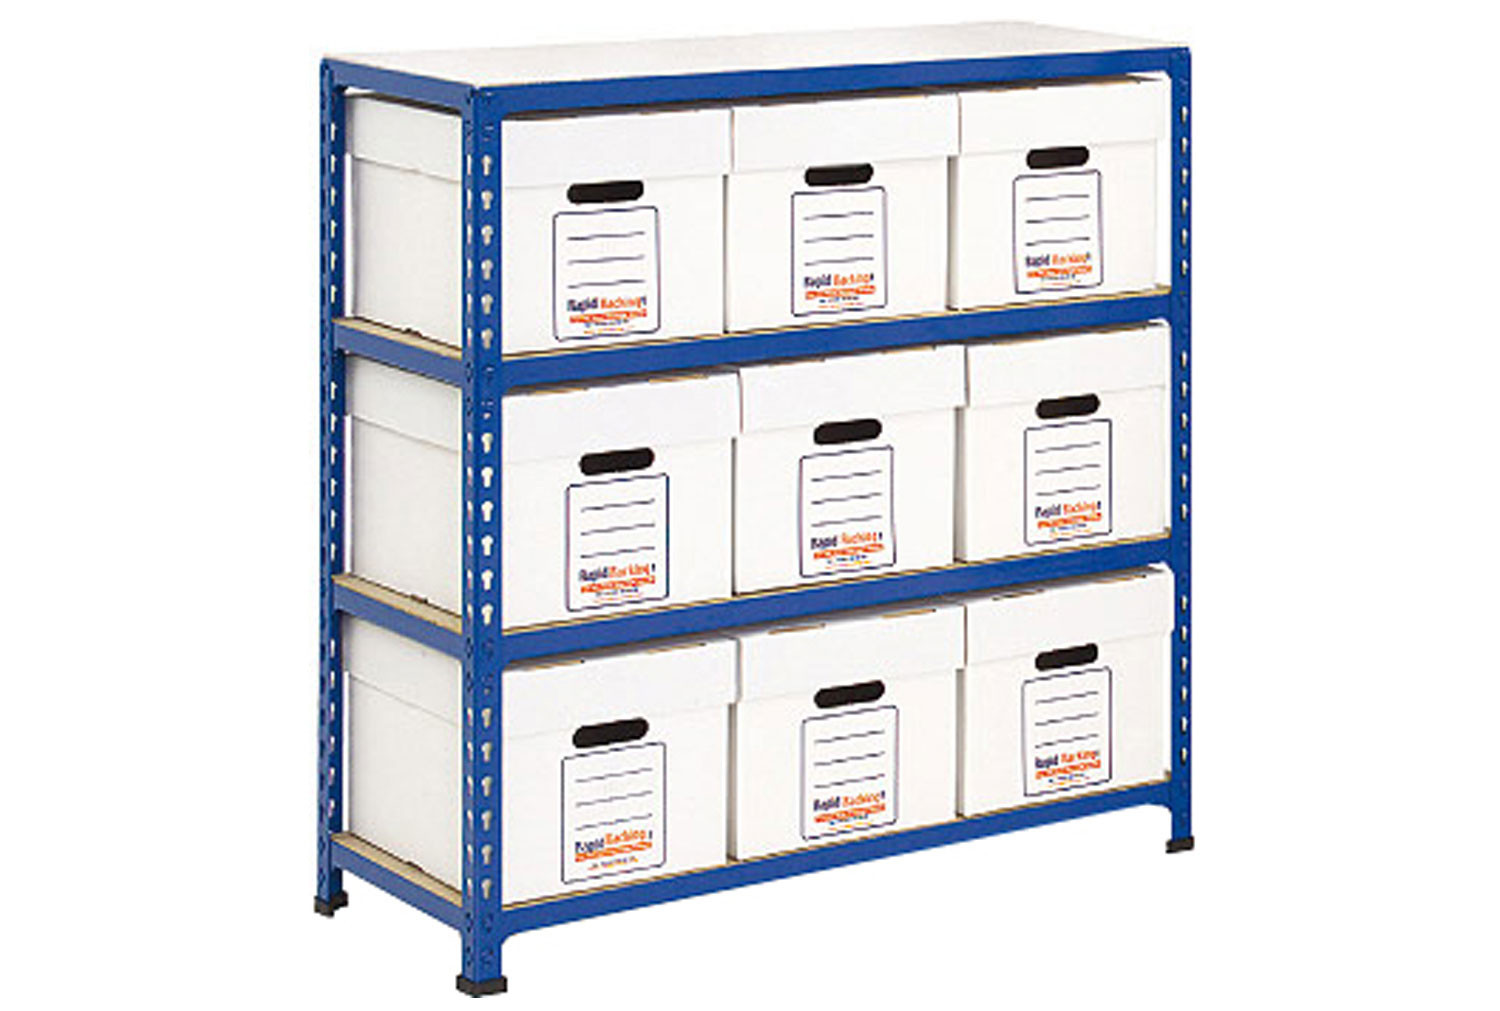 Rapid 2 economy document storage with 9 boxes